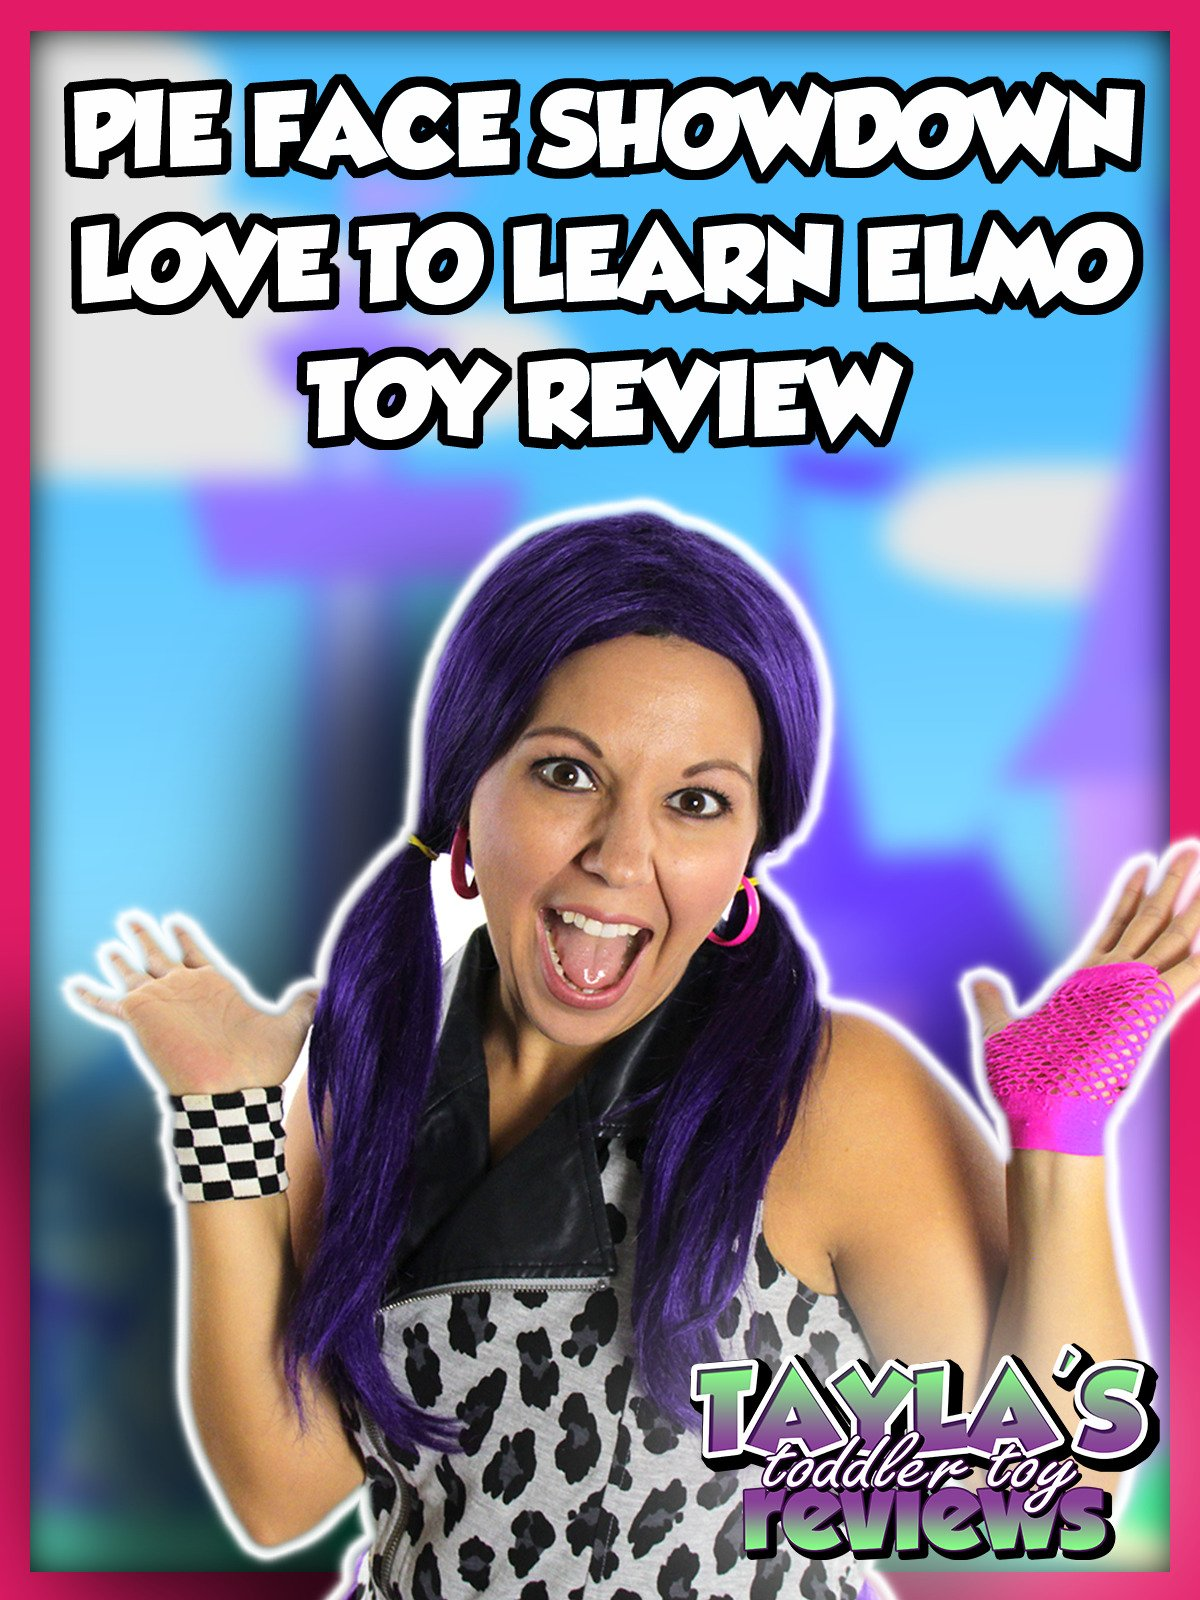 Review: Pie Face Showdown and Love To Learn Elmo Toy Review